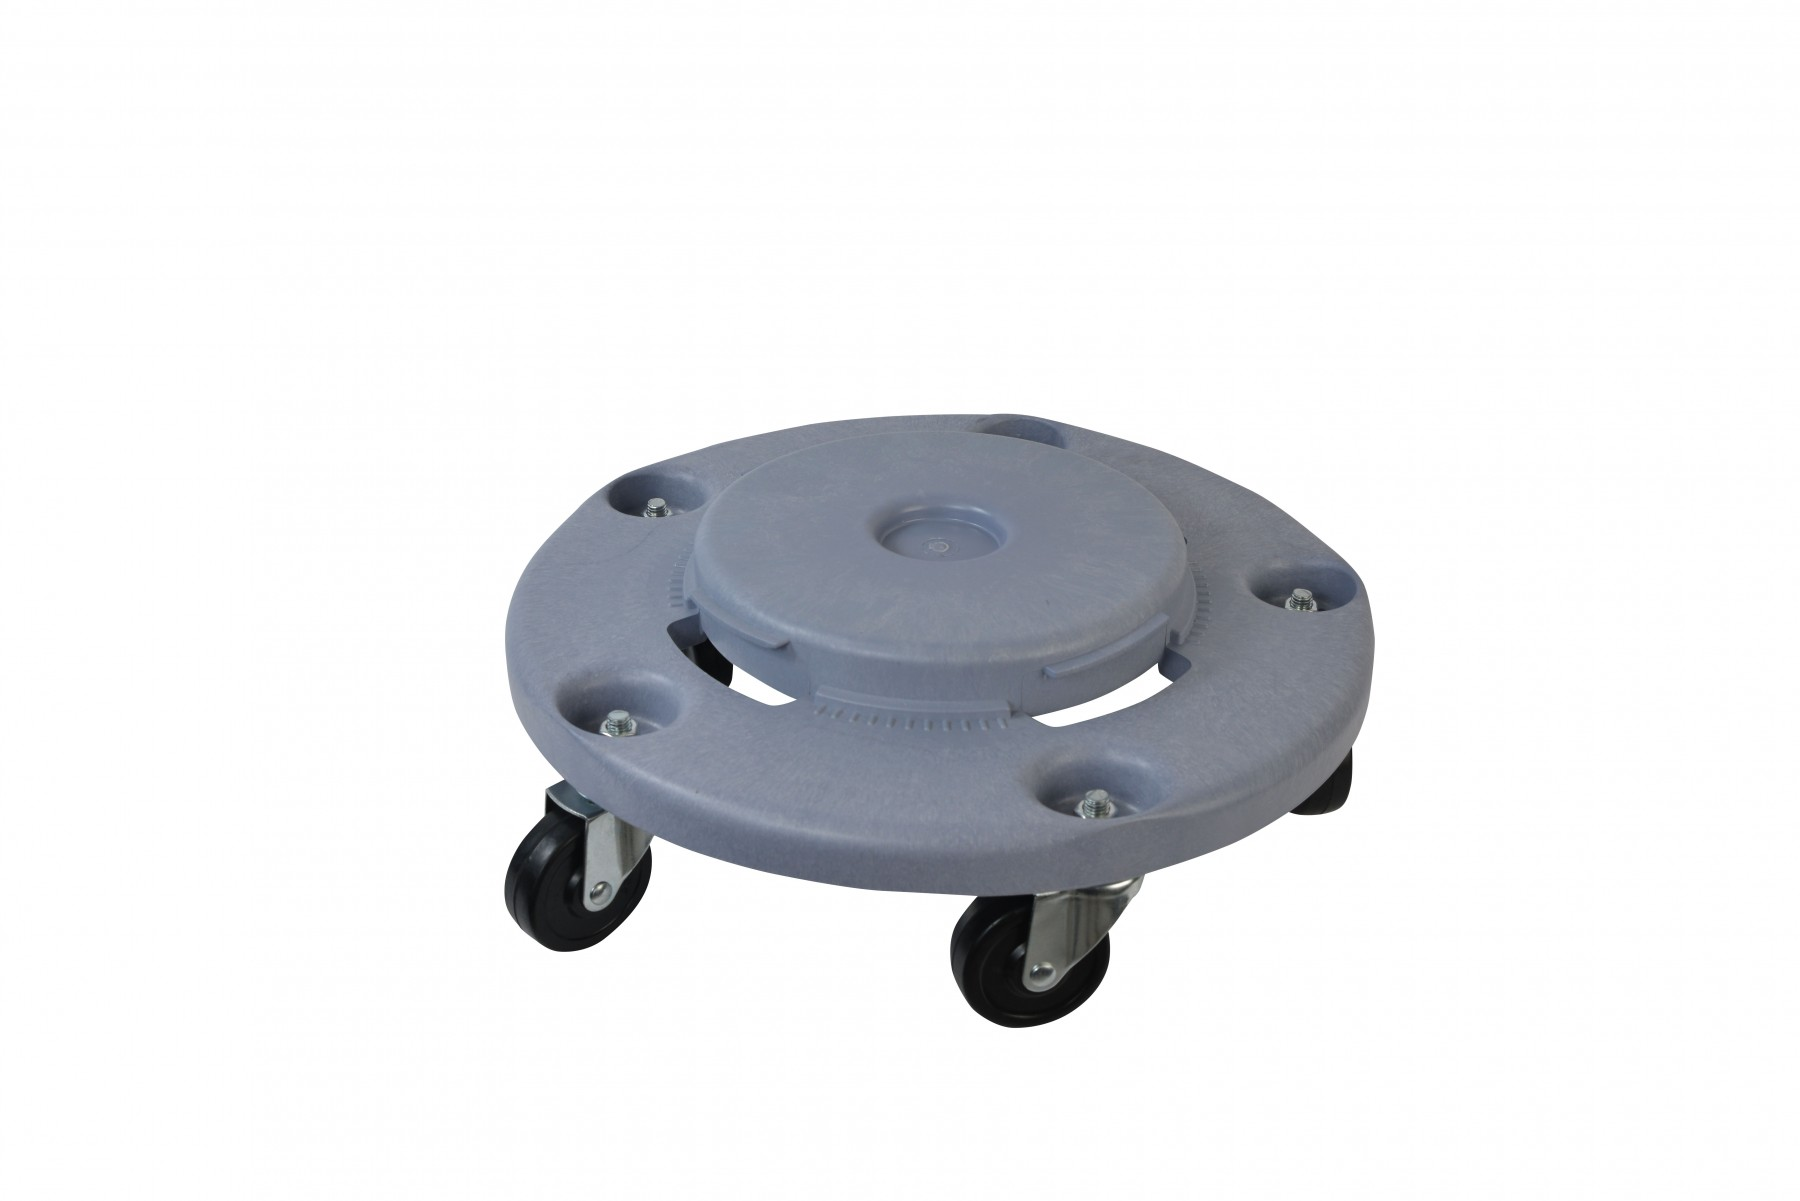 Janico 1040 Trash Can Dolly Heavy Duty Bolted Casters